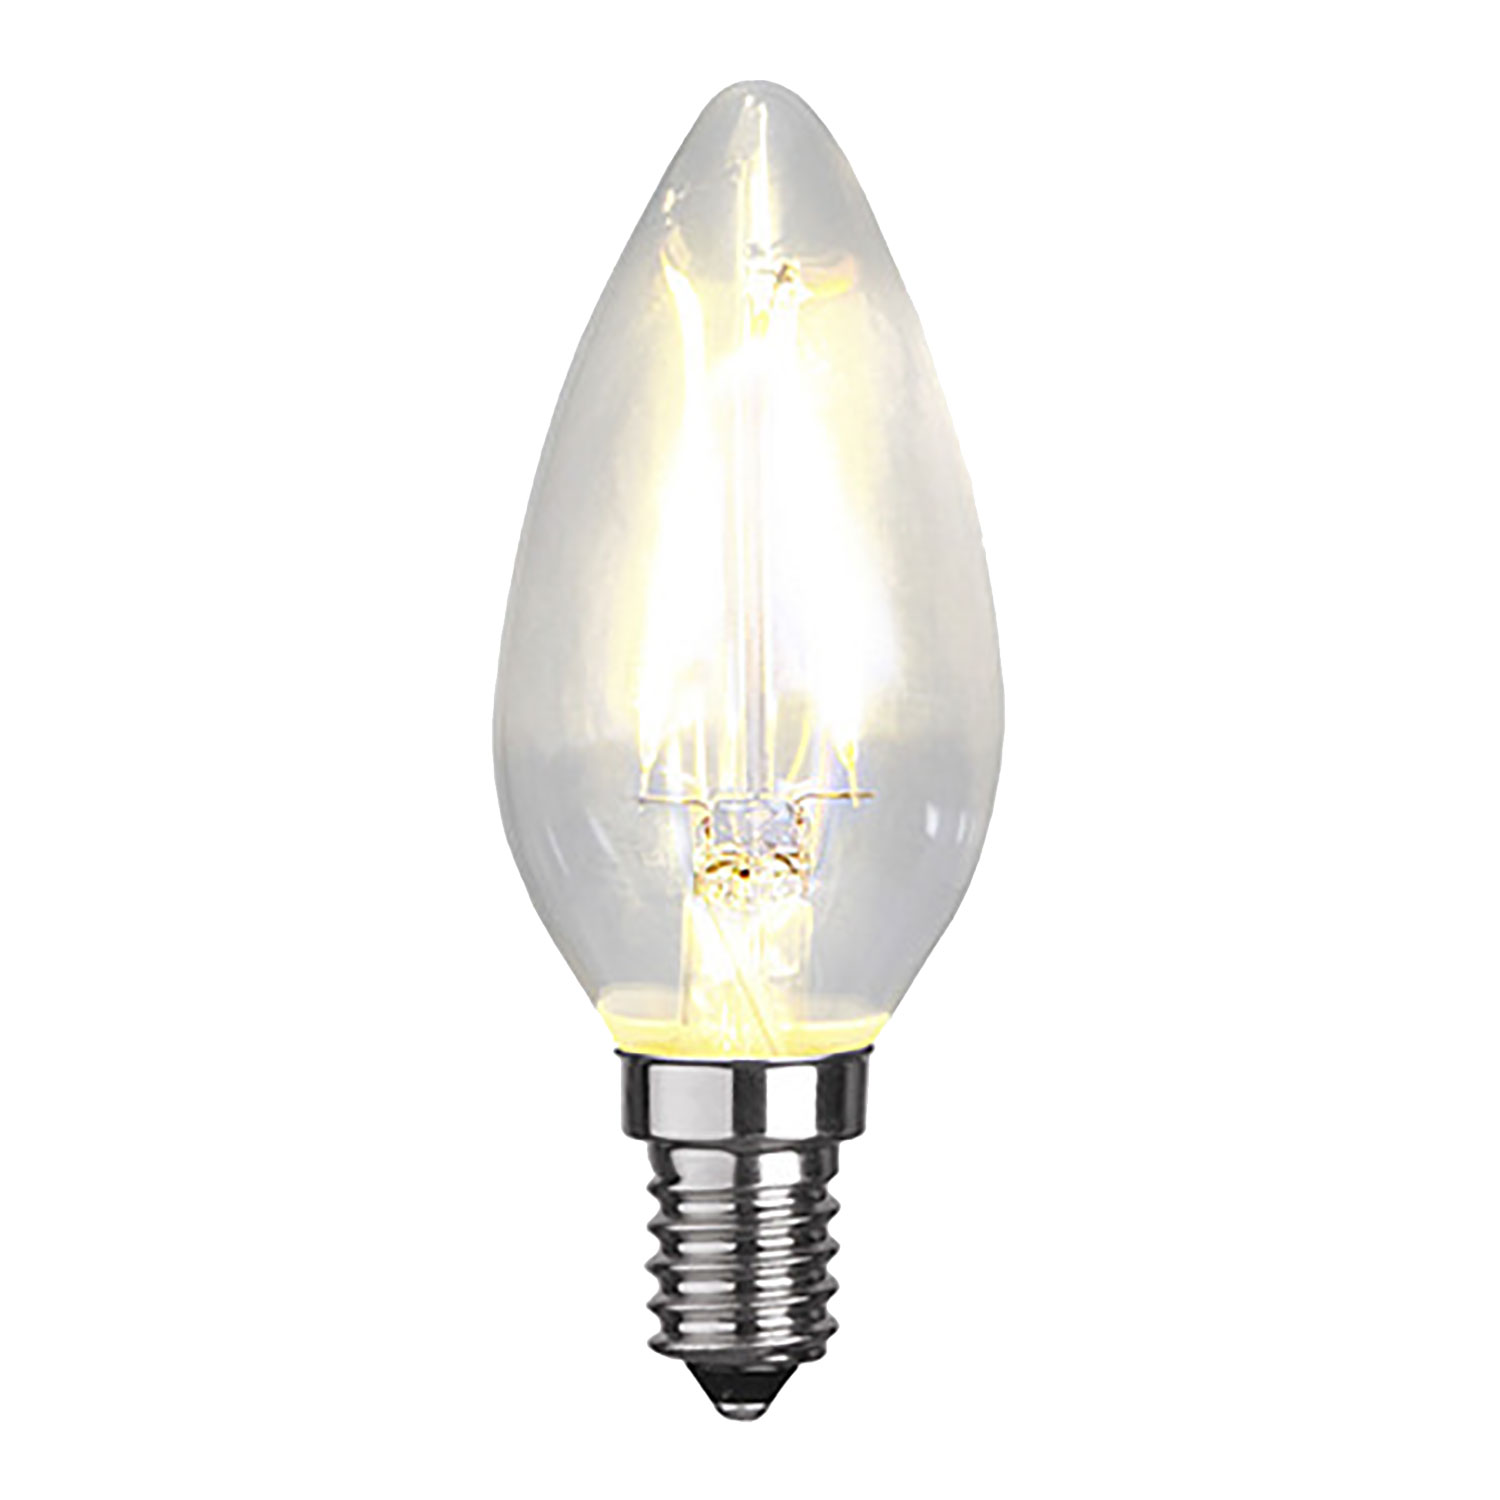 LED-lampa E14 C35 filament, transparent